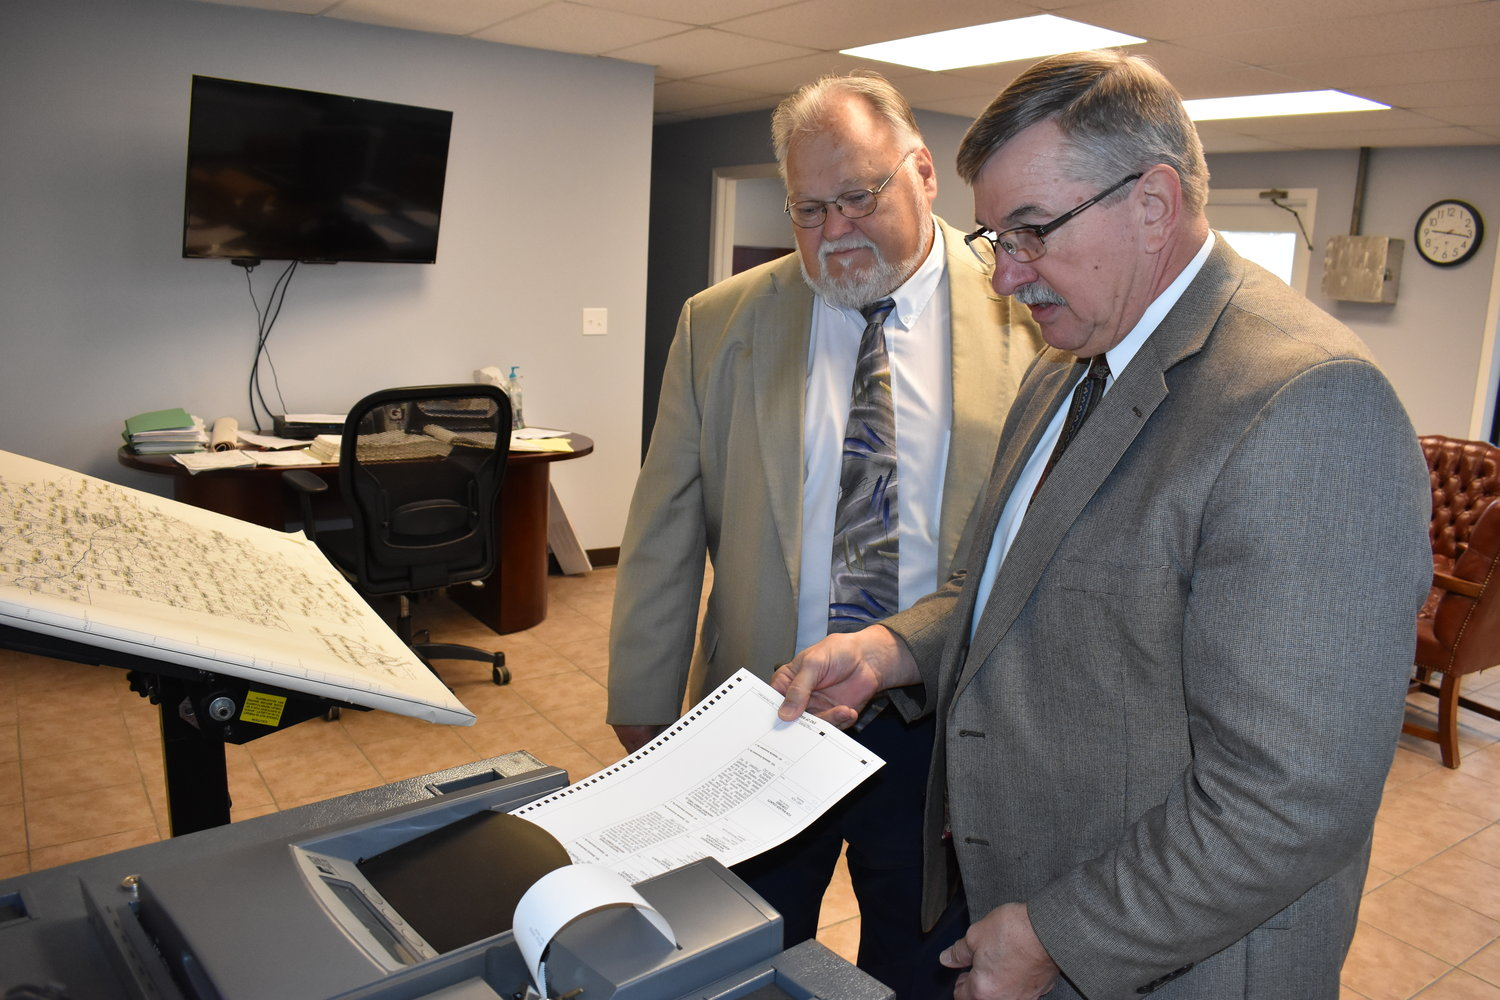 A. Lee Tucker, left, is seen during a voting machine test in 2018 with then-Probate Judge Rick Allison. Tucker, the current probate judge, said the county's voting machines will now have to be replaced.